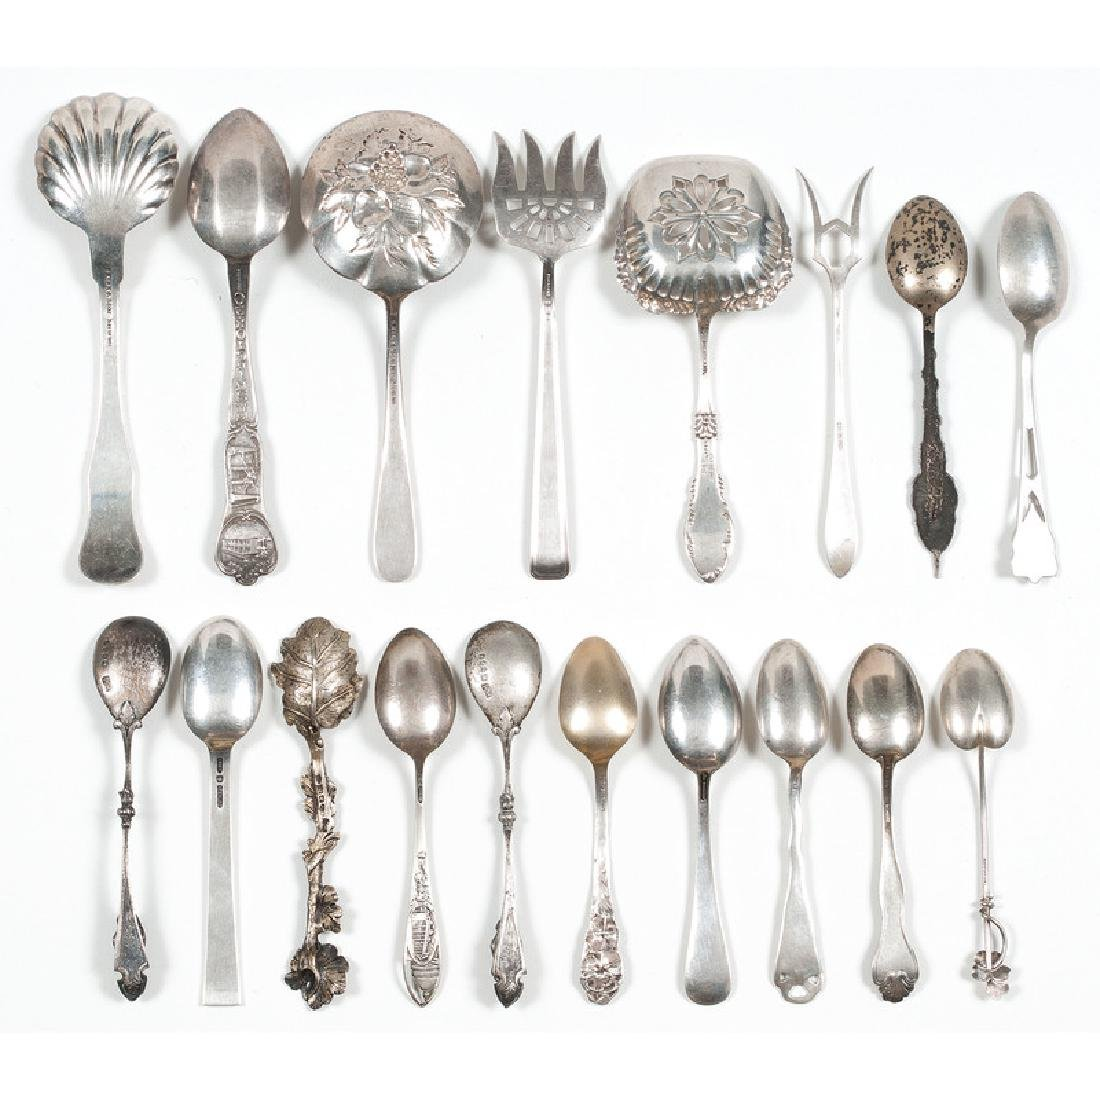 American Sterling Flatware Including Souvenir Spoons - 5